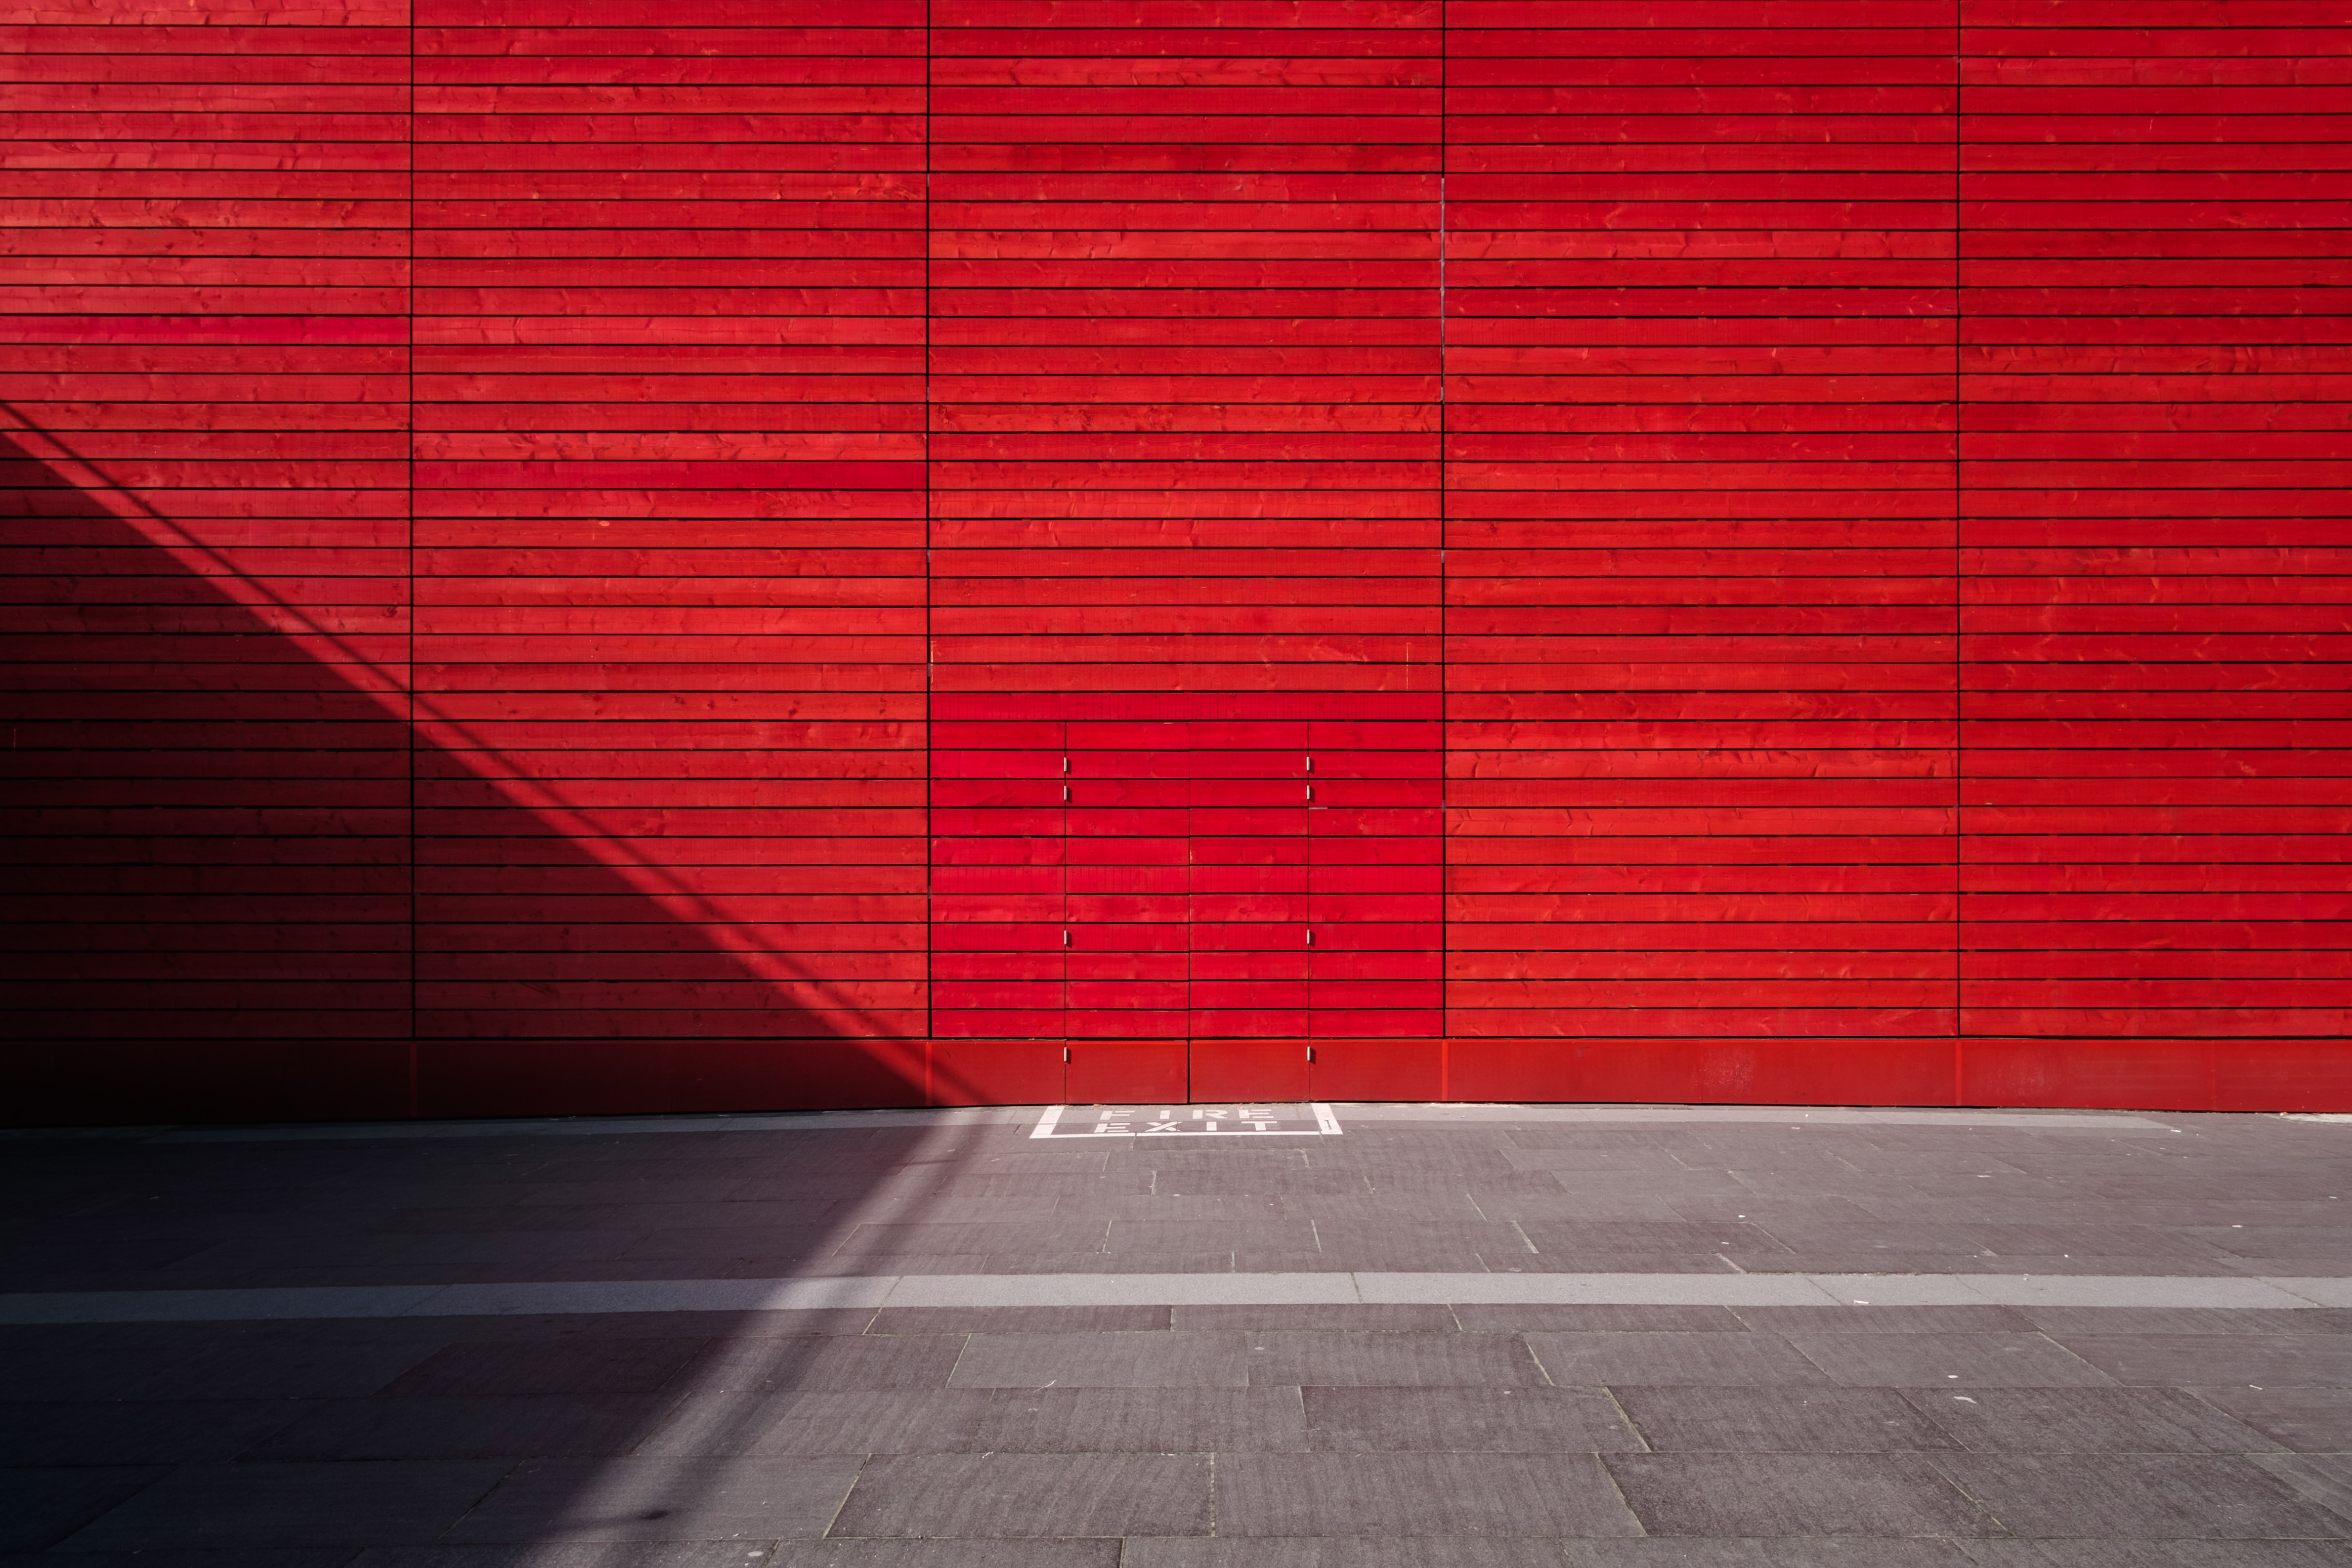 red painted wall and concrete pavement